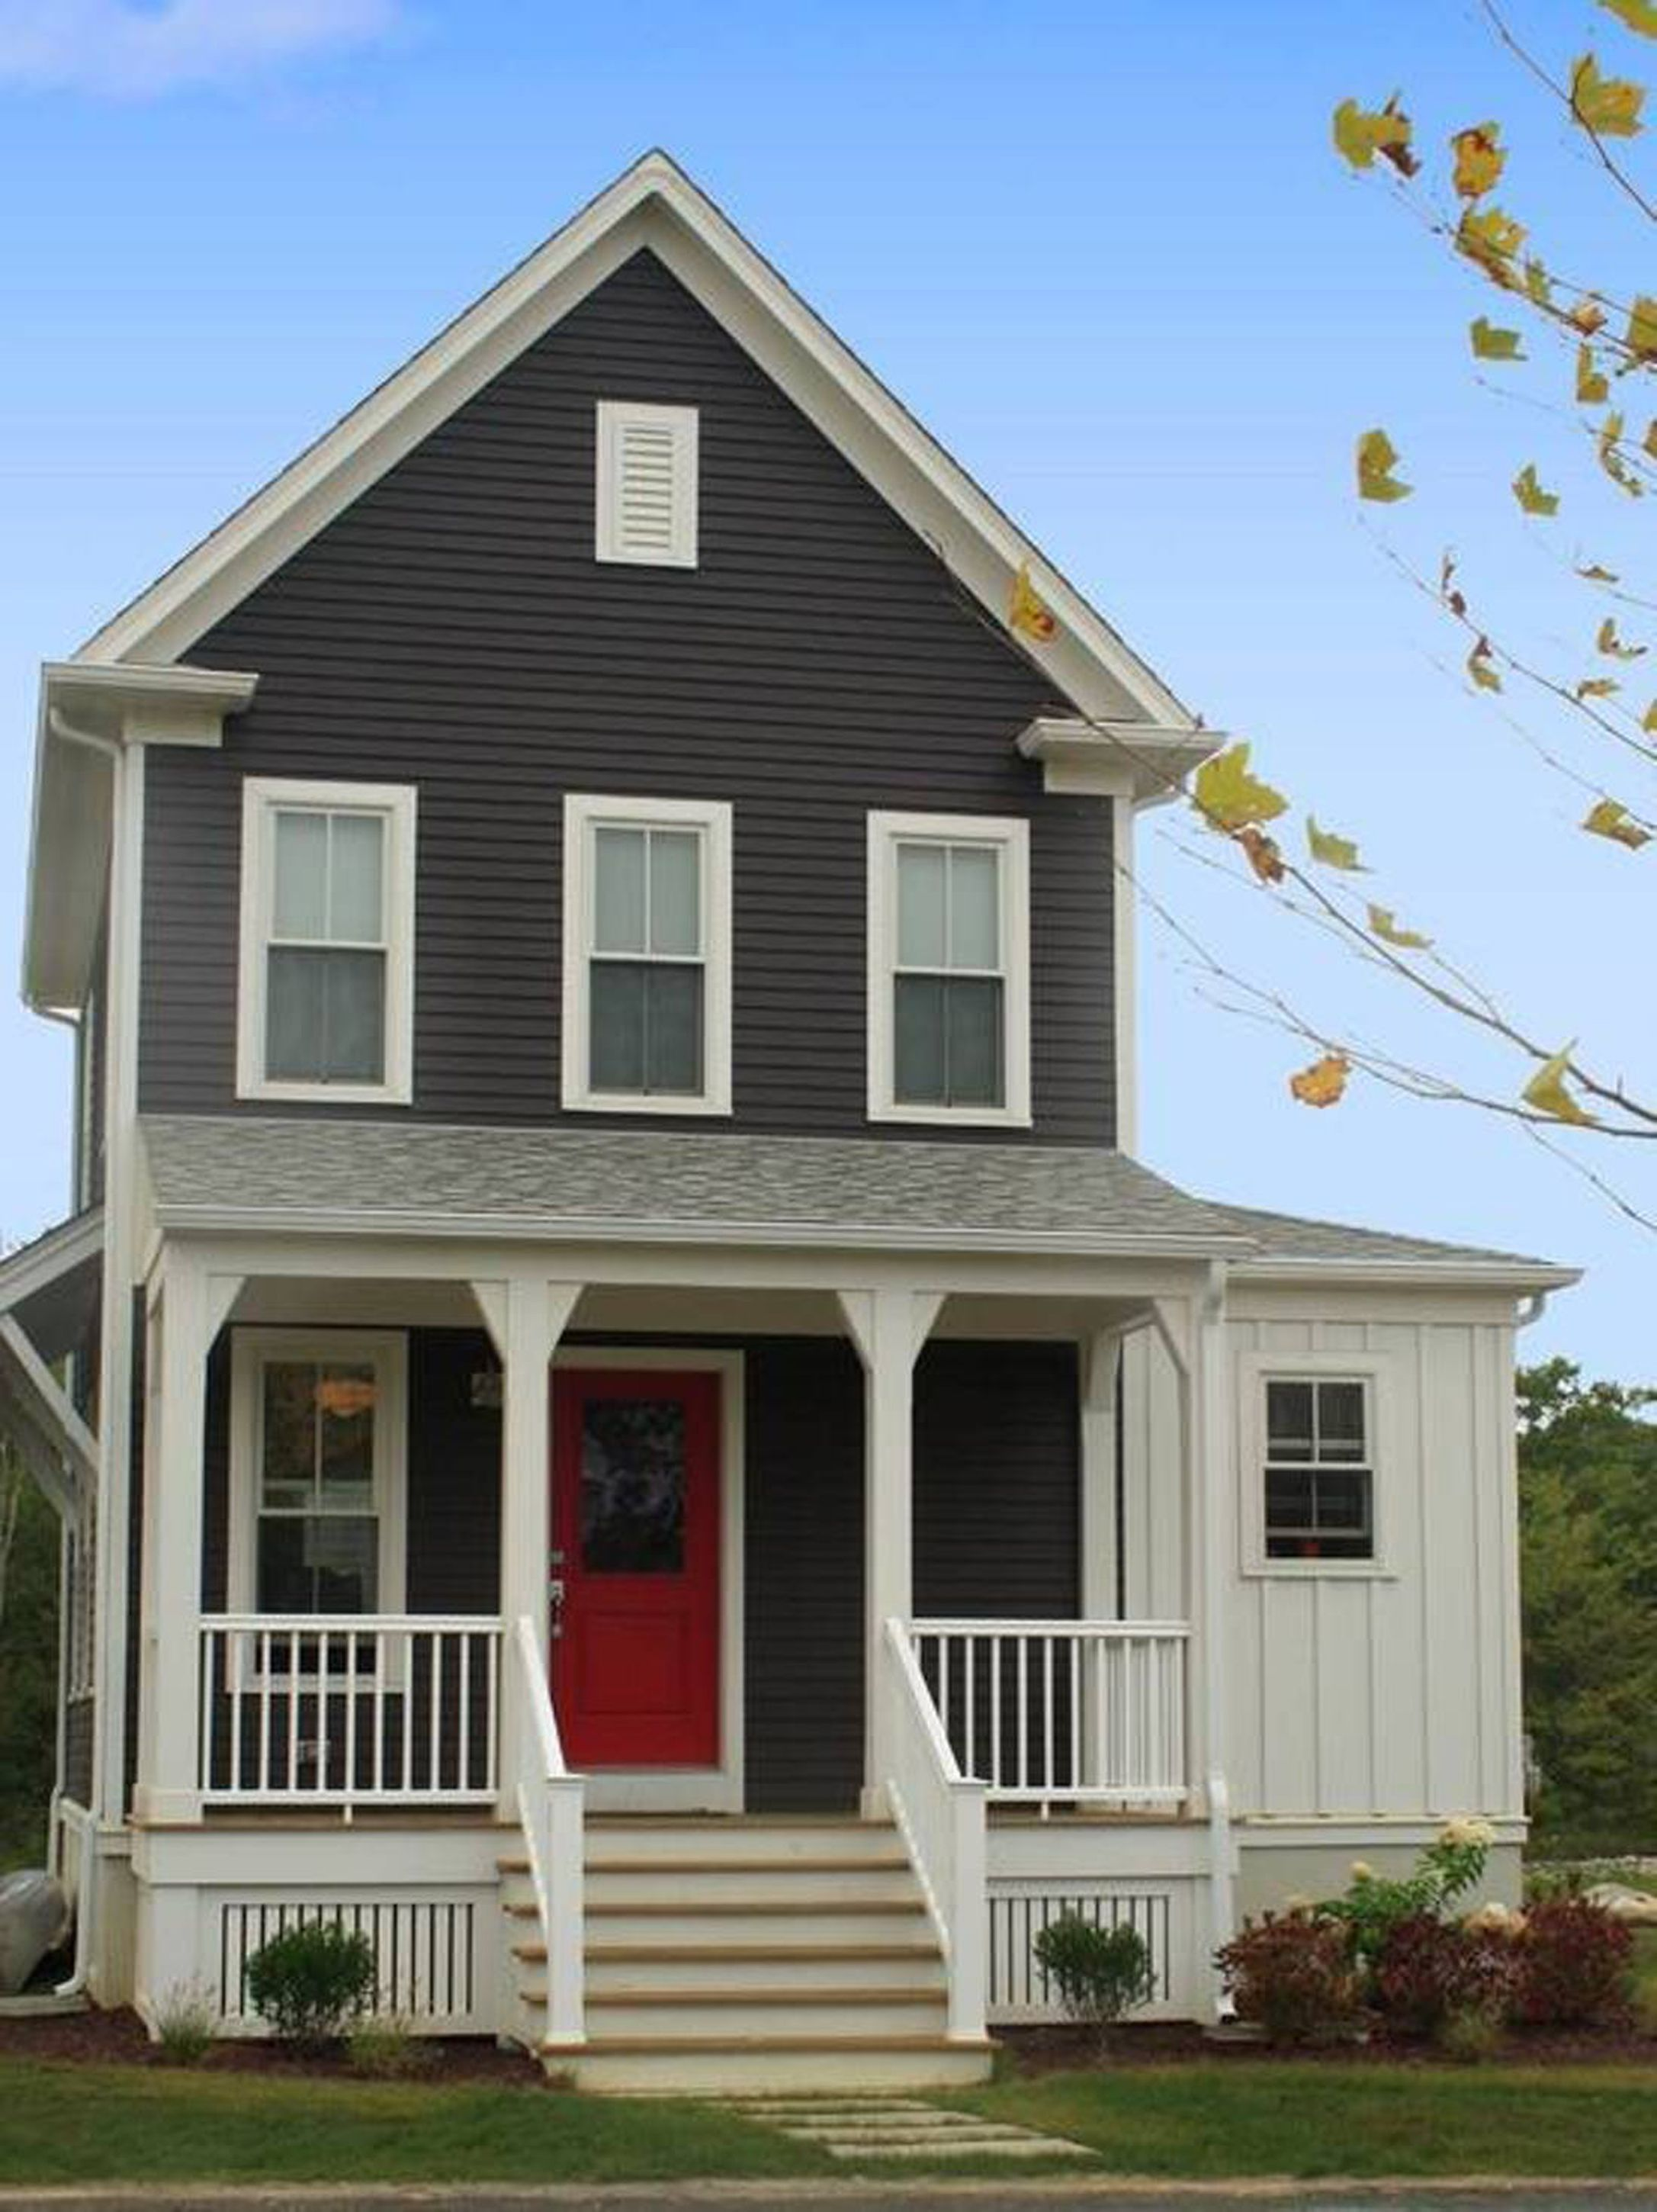 Delightful Gray House Exterior Paint Idea With White Window Frames